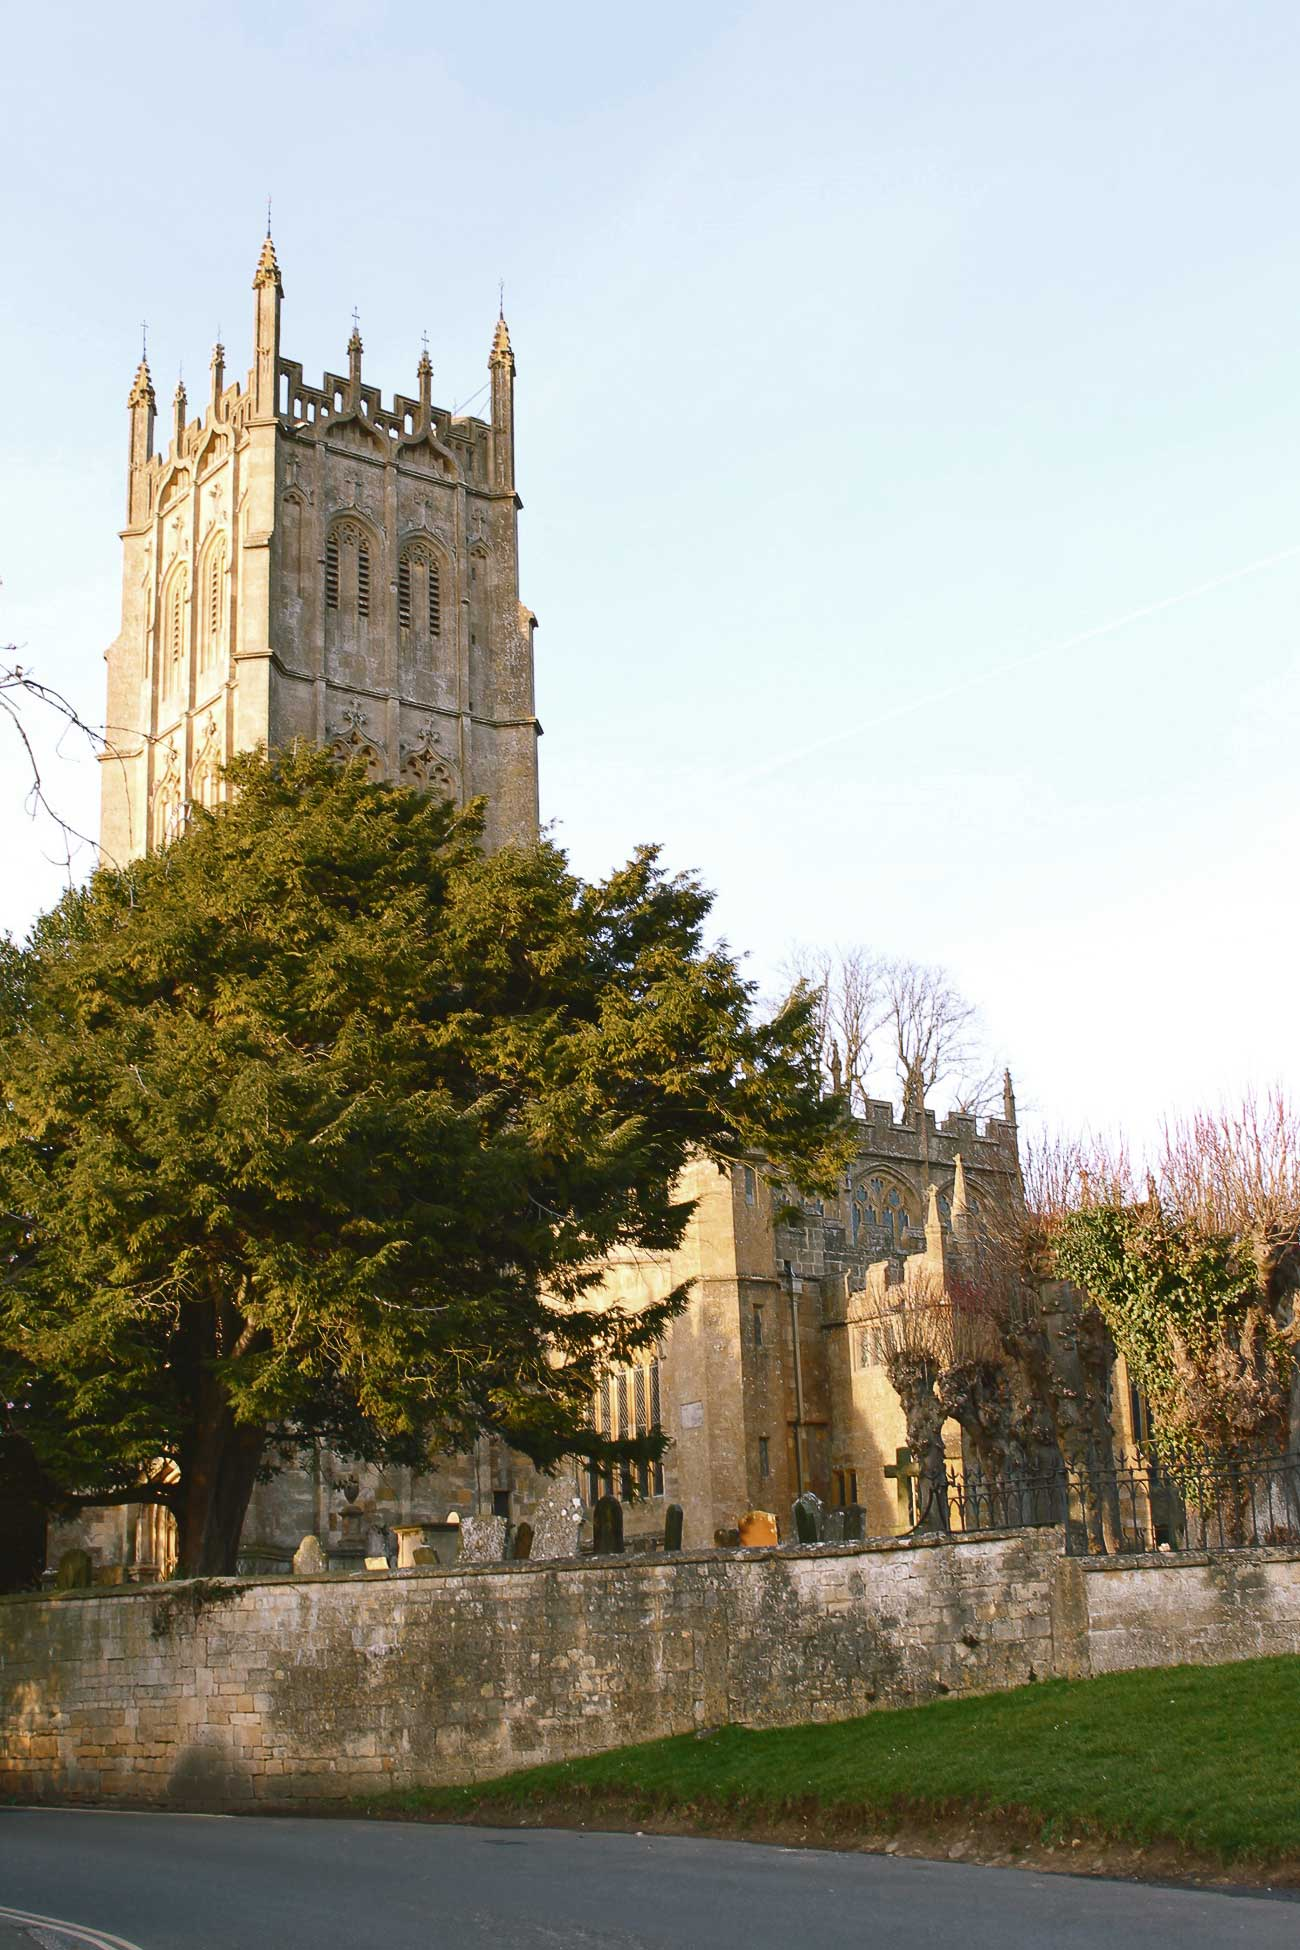 Turismo_Cotswolds_campina_inglesa_iglesia_Chipping_Campden